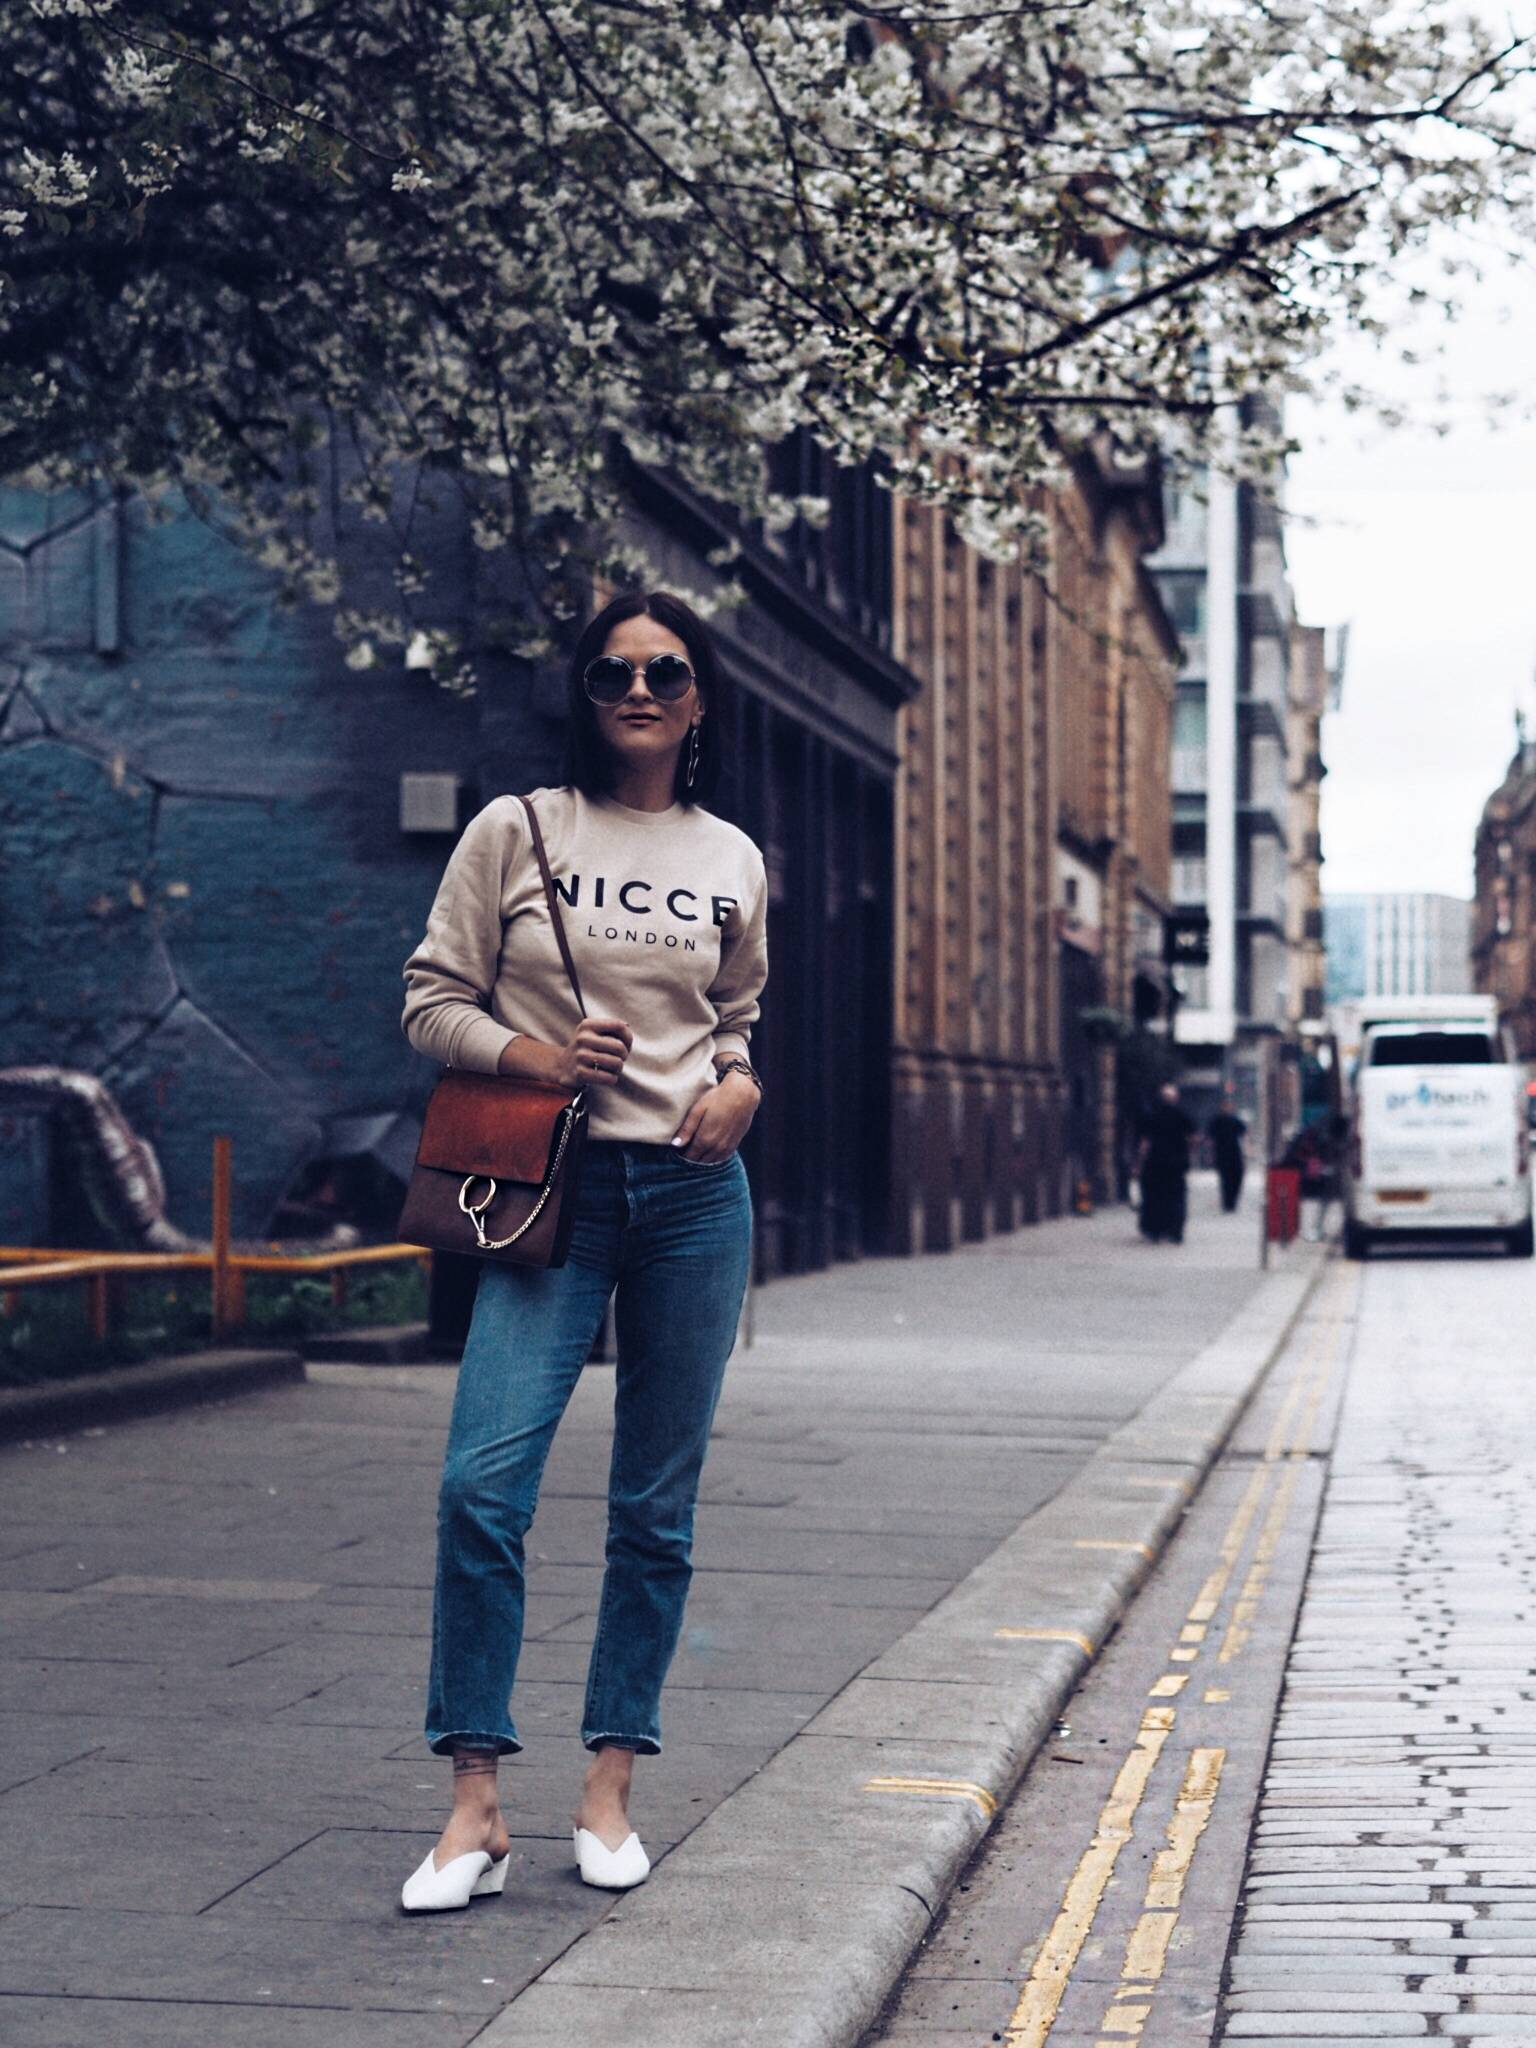 NICCE-how-to-wear-hoodies-and-sweatshirts-street-style-by-Glasgow-blogger-LAFOTKA